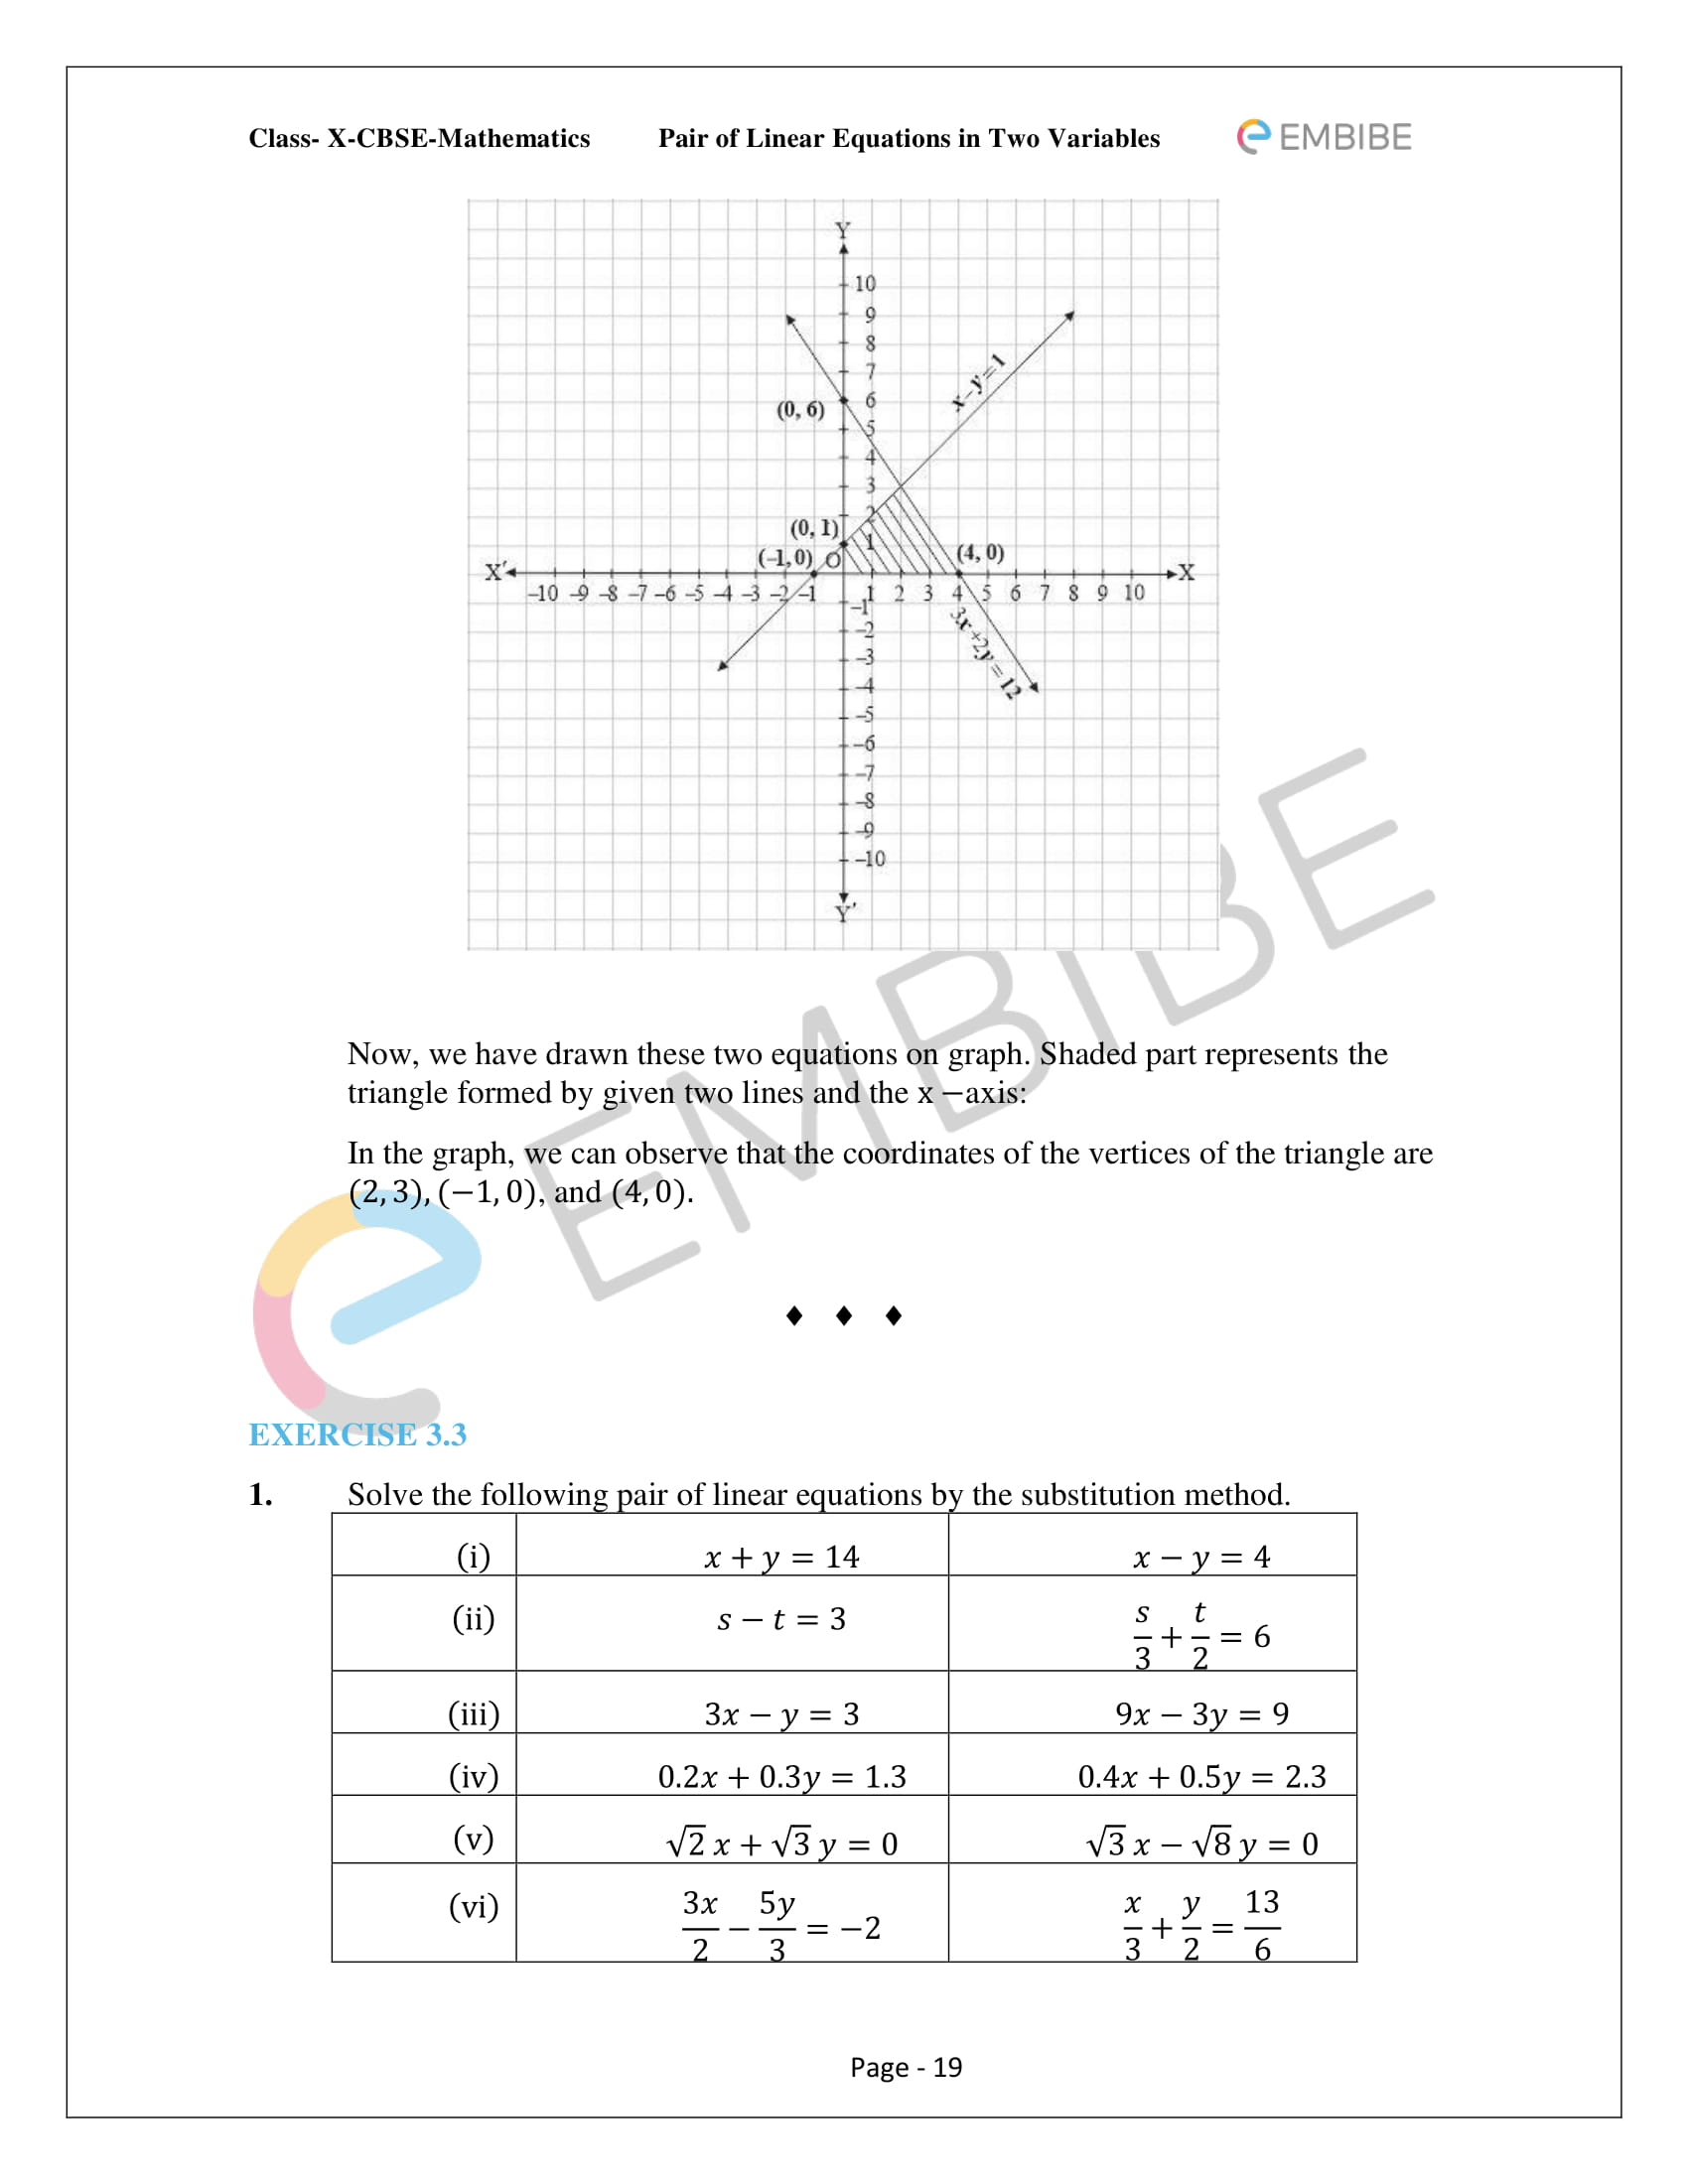 CBSE NCERT Solutions For Class 10 Maths Chapter 3 - Pair of Linear Equations In Two Variables - 19